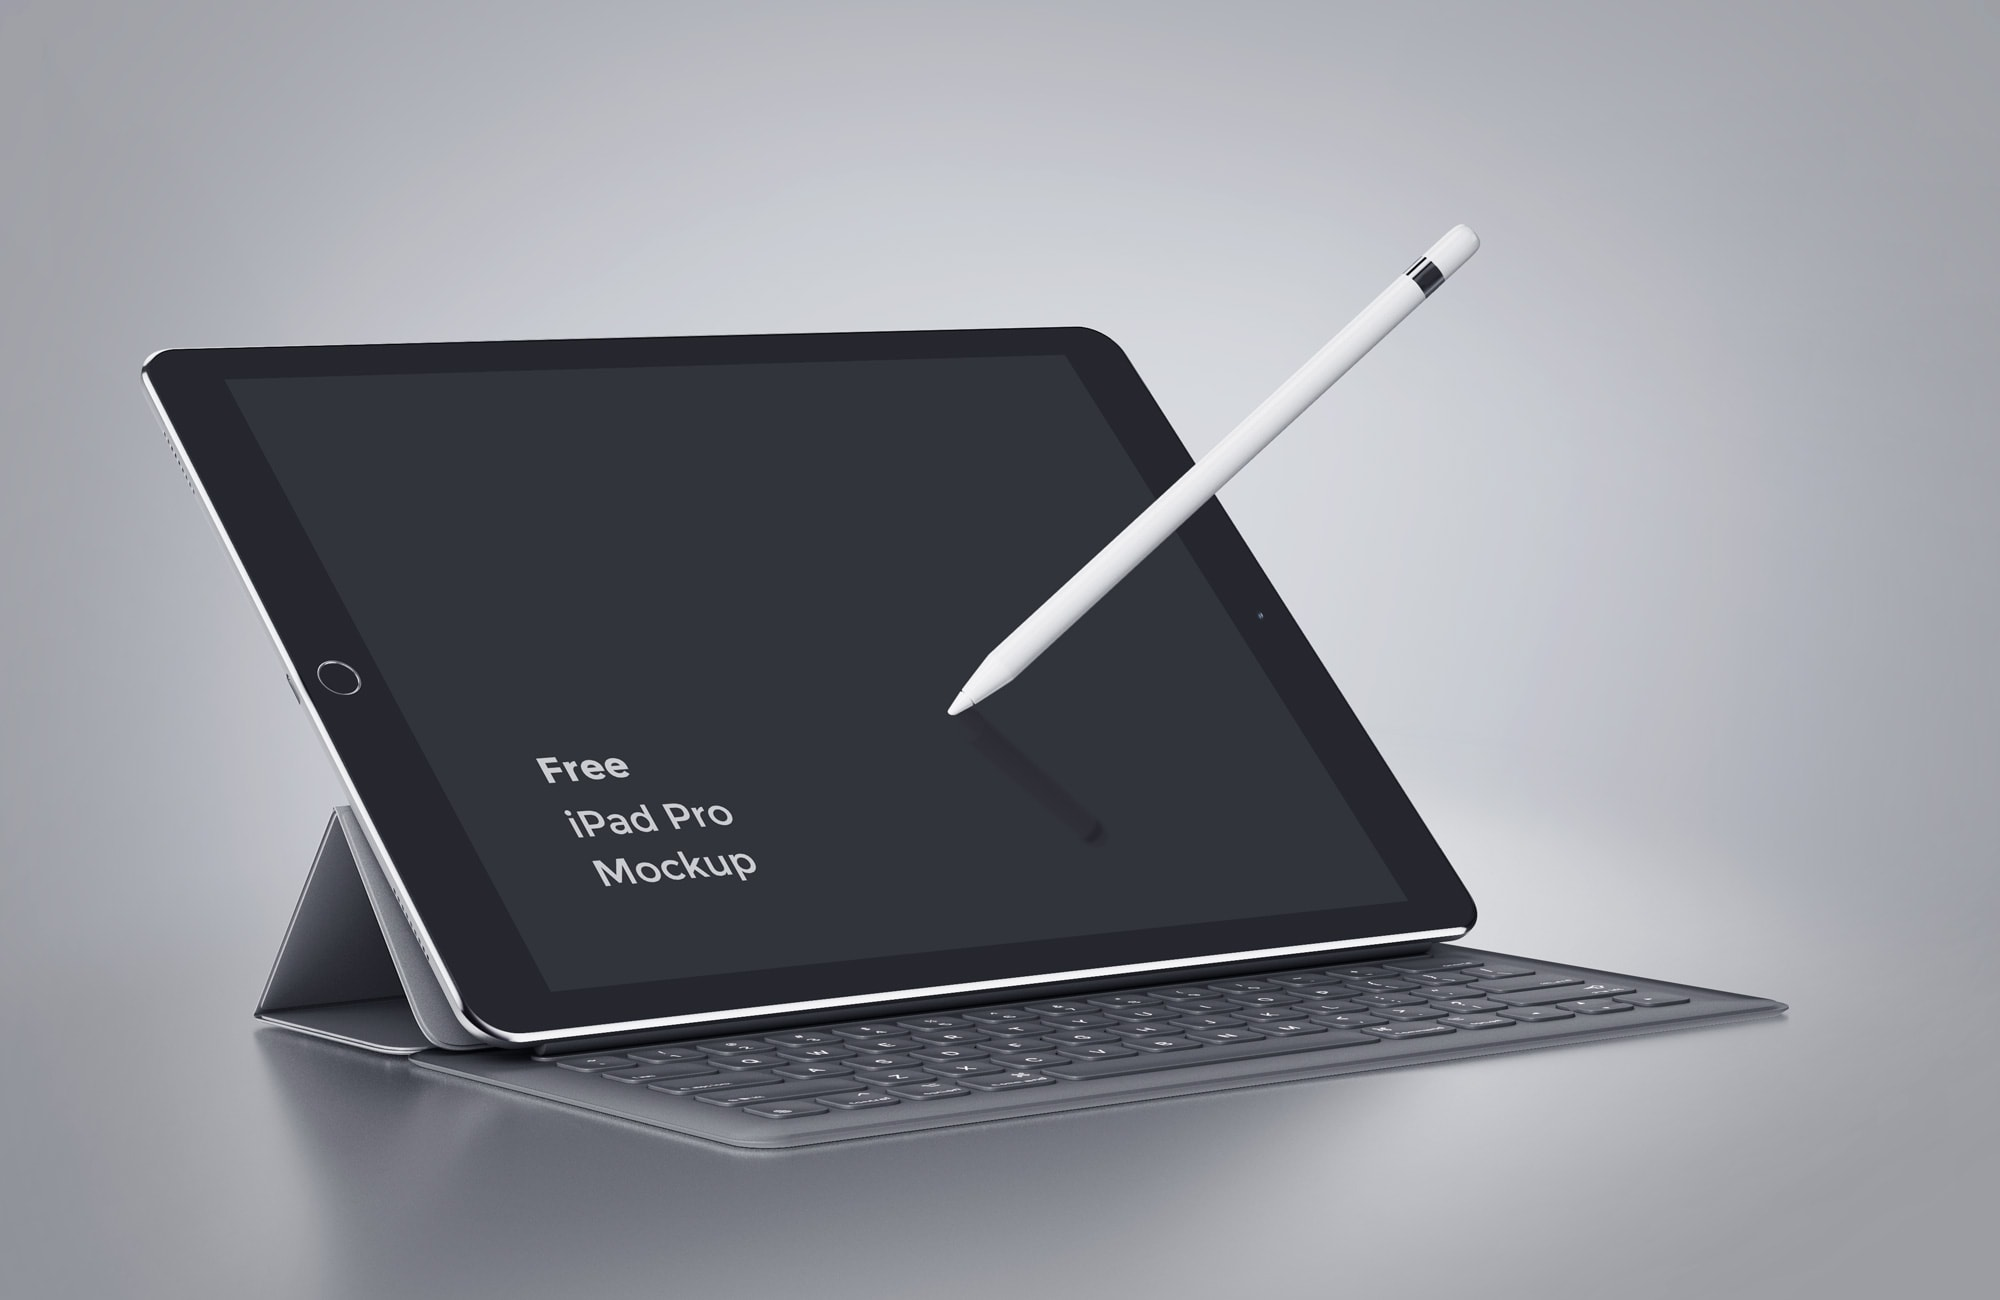 iPad Pro With Movable Pencil Free Mockup